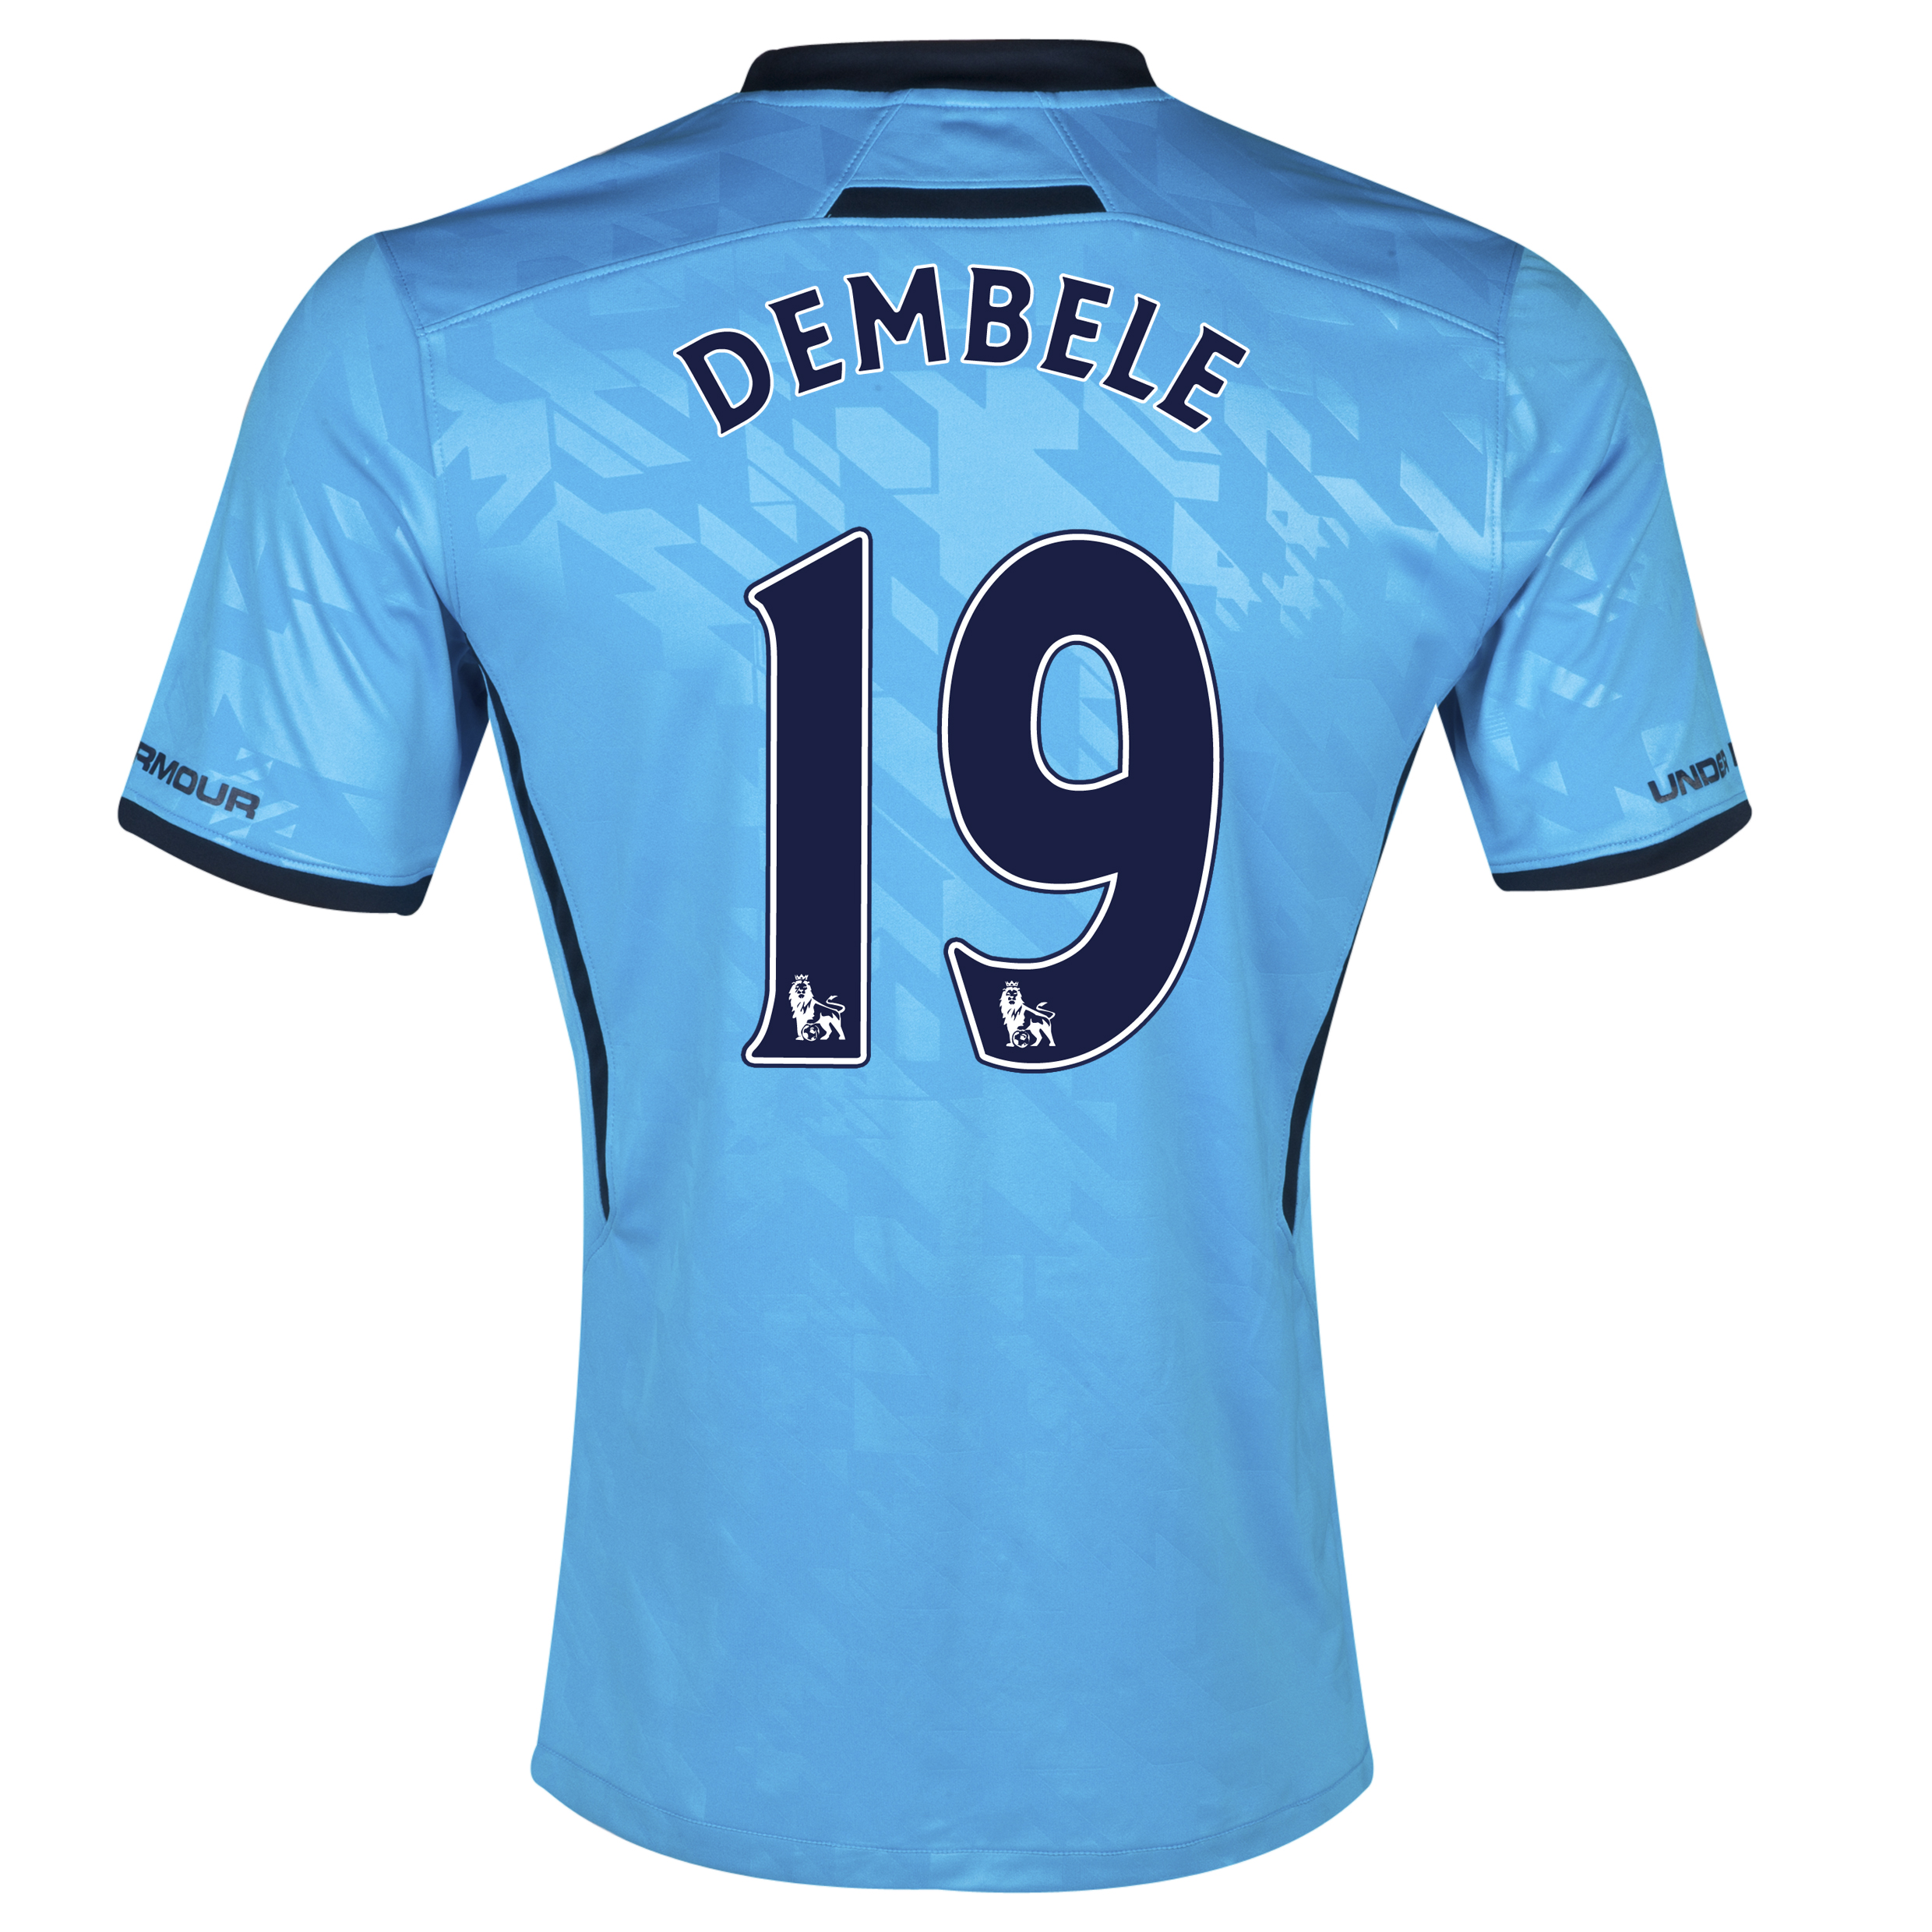 Tottenham Hotspur Away Shirt 2013/14 with Dembele 19 printing